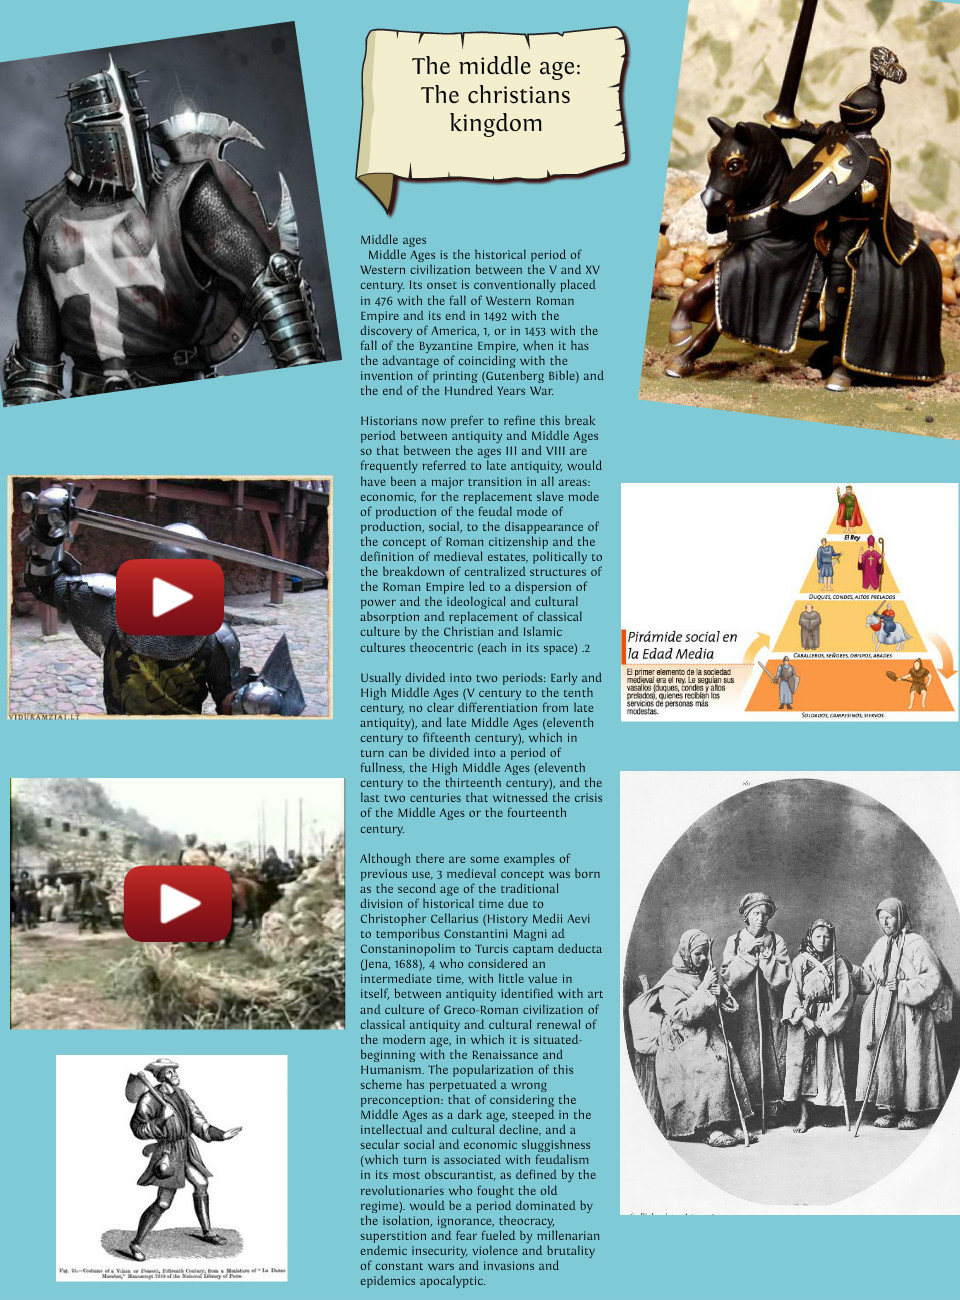 Middle Ages the Christians Kingdom